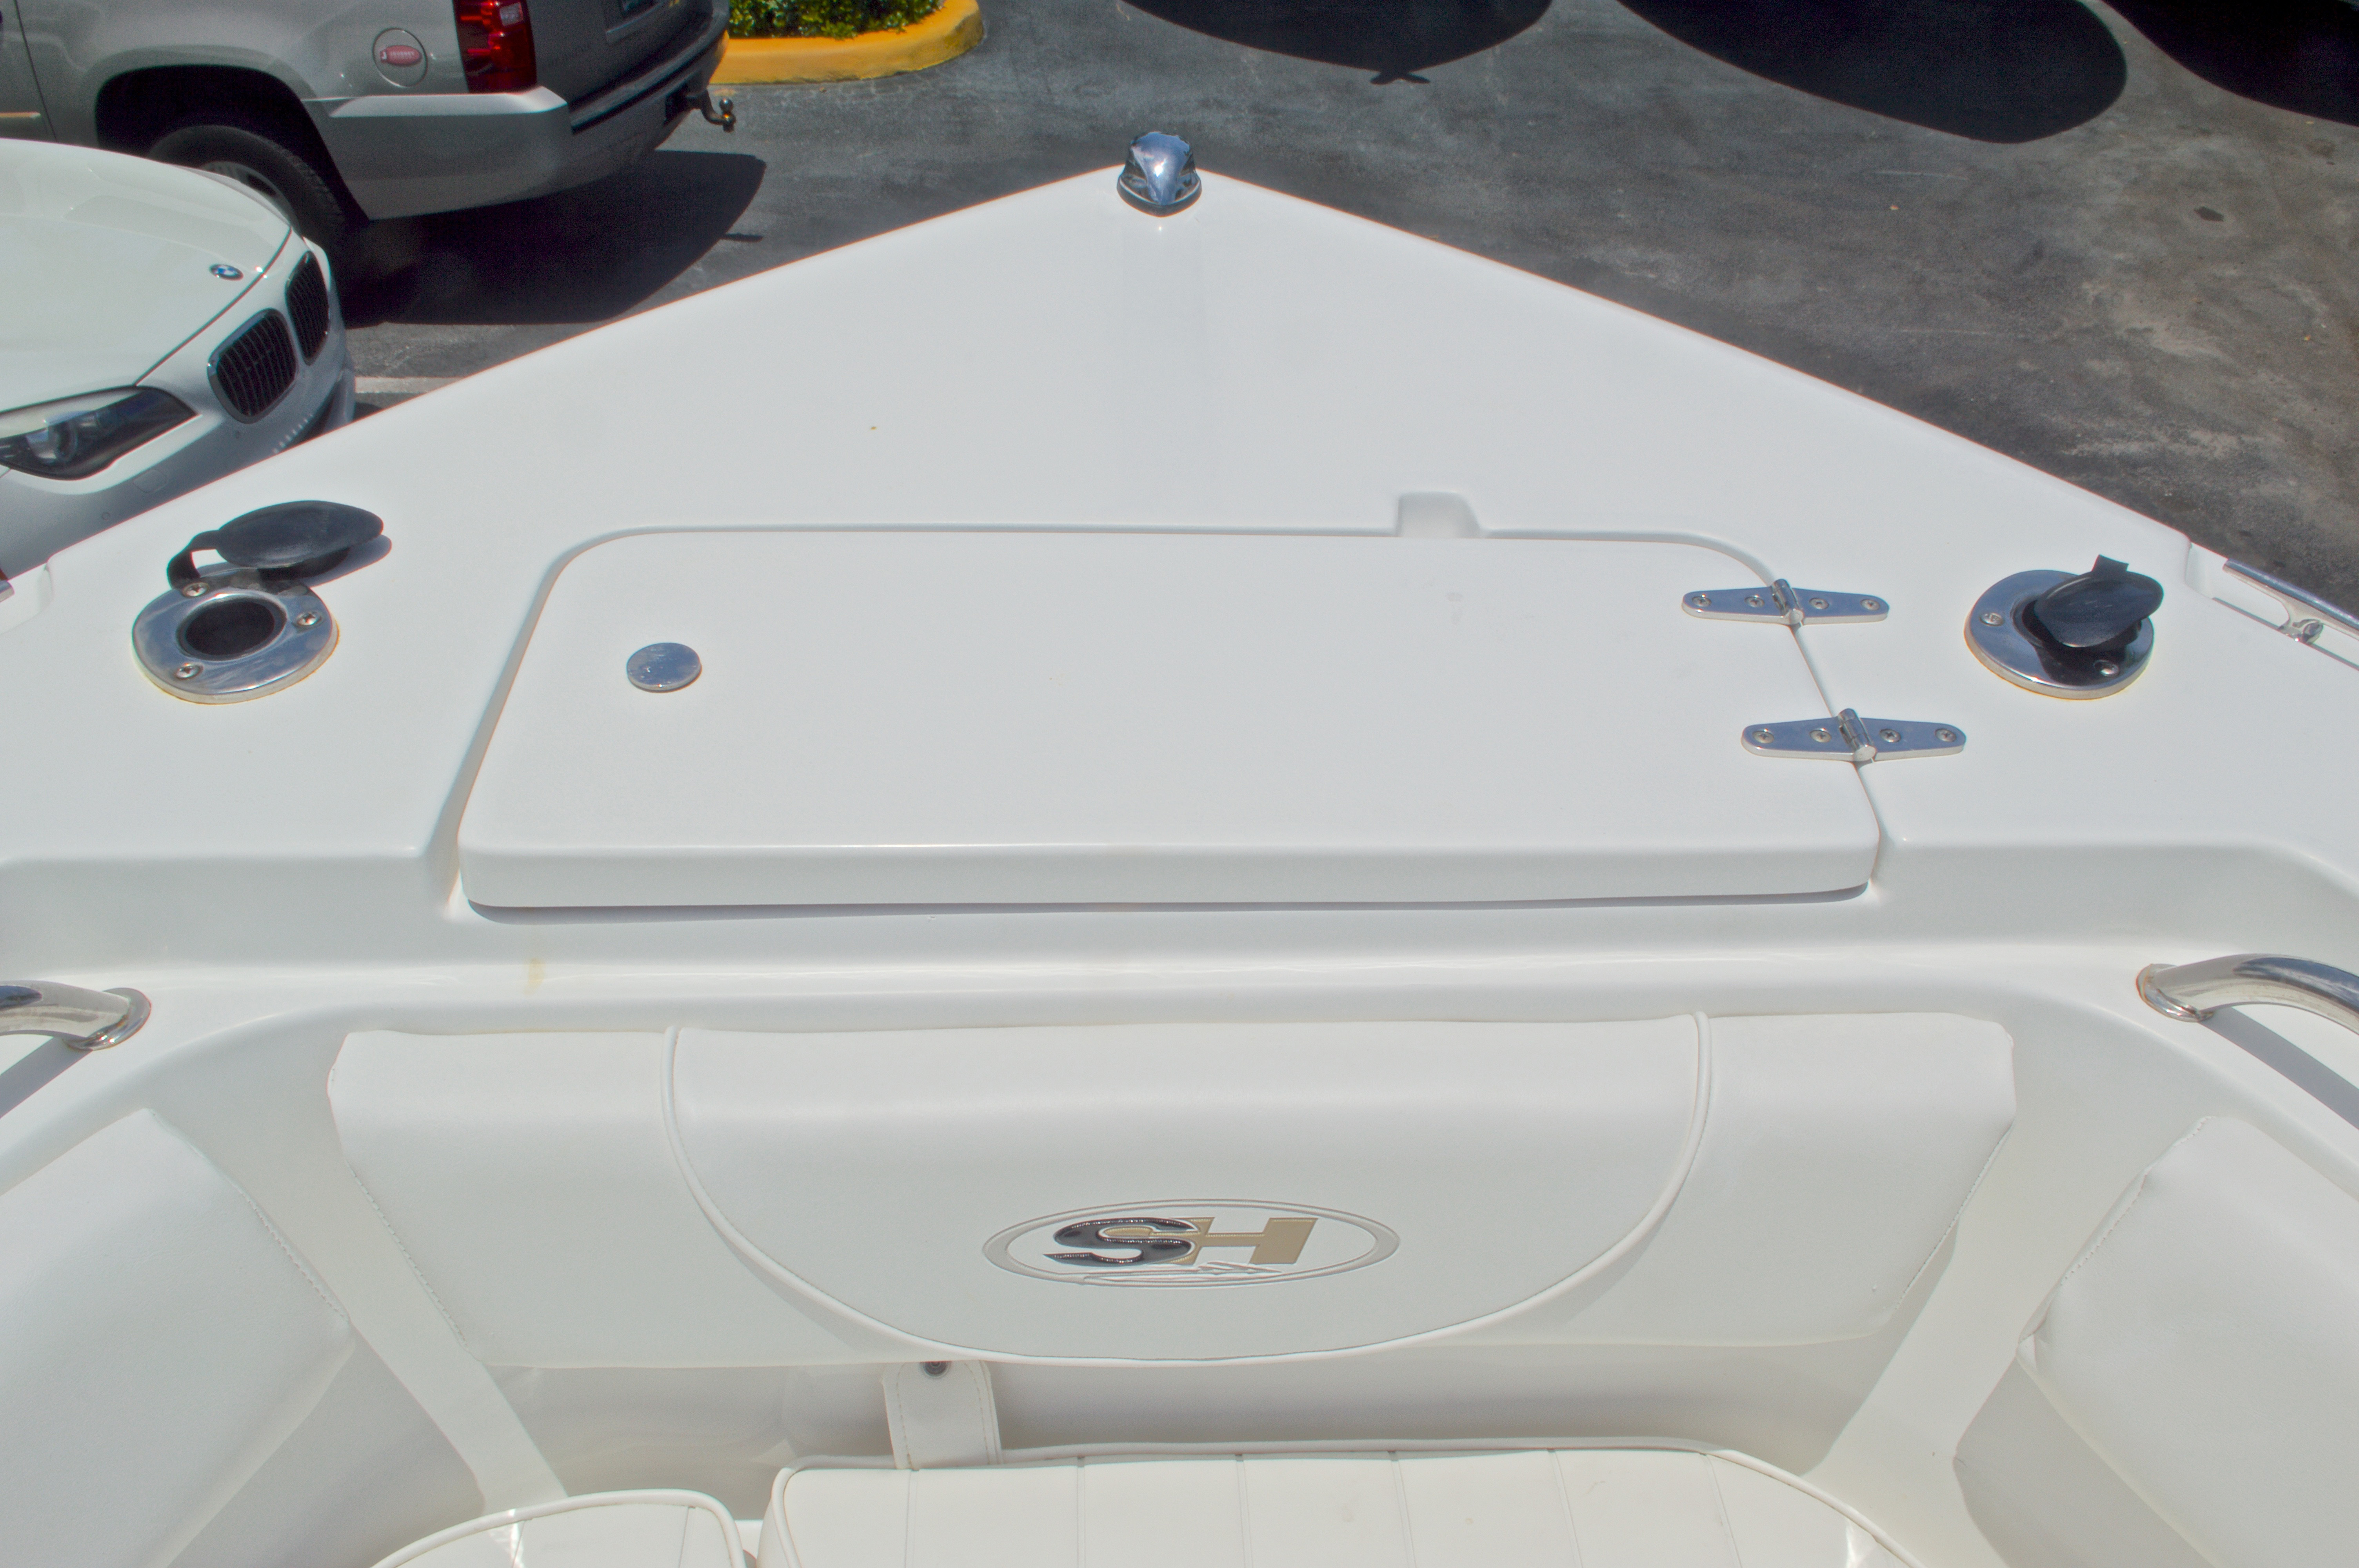 Thumbnail 49 for Used 2013 Sea Hunt 210 Triton boat for sale in West Palm Beach, FL